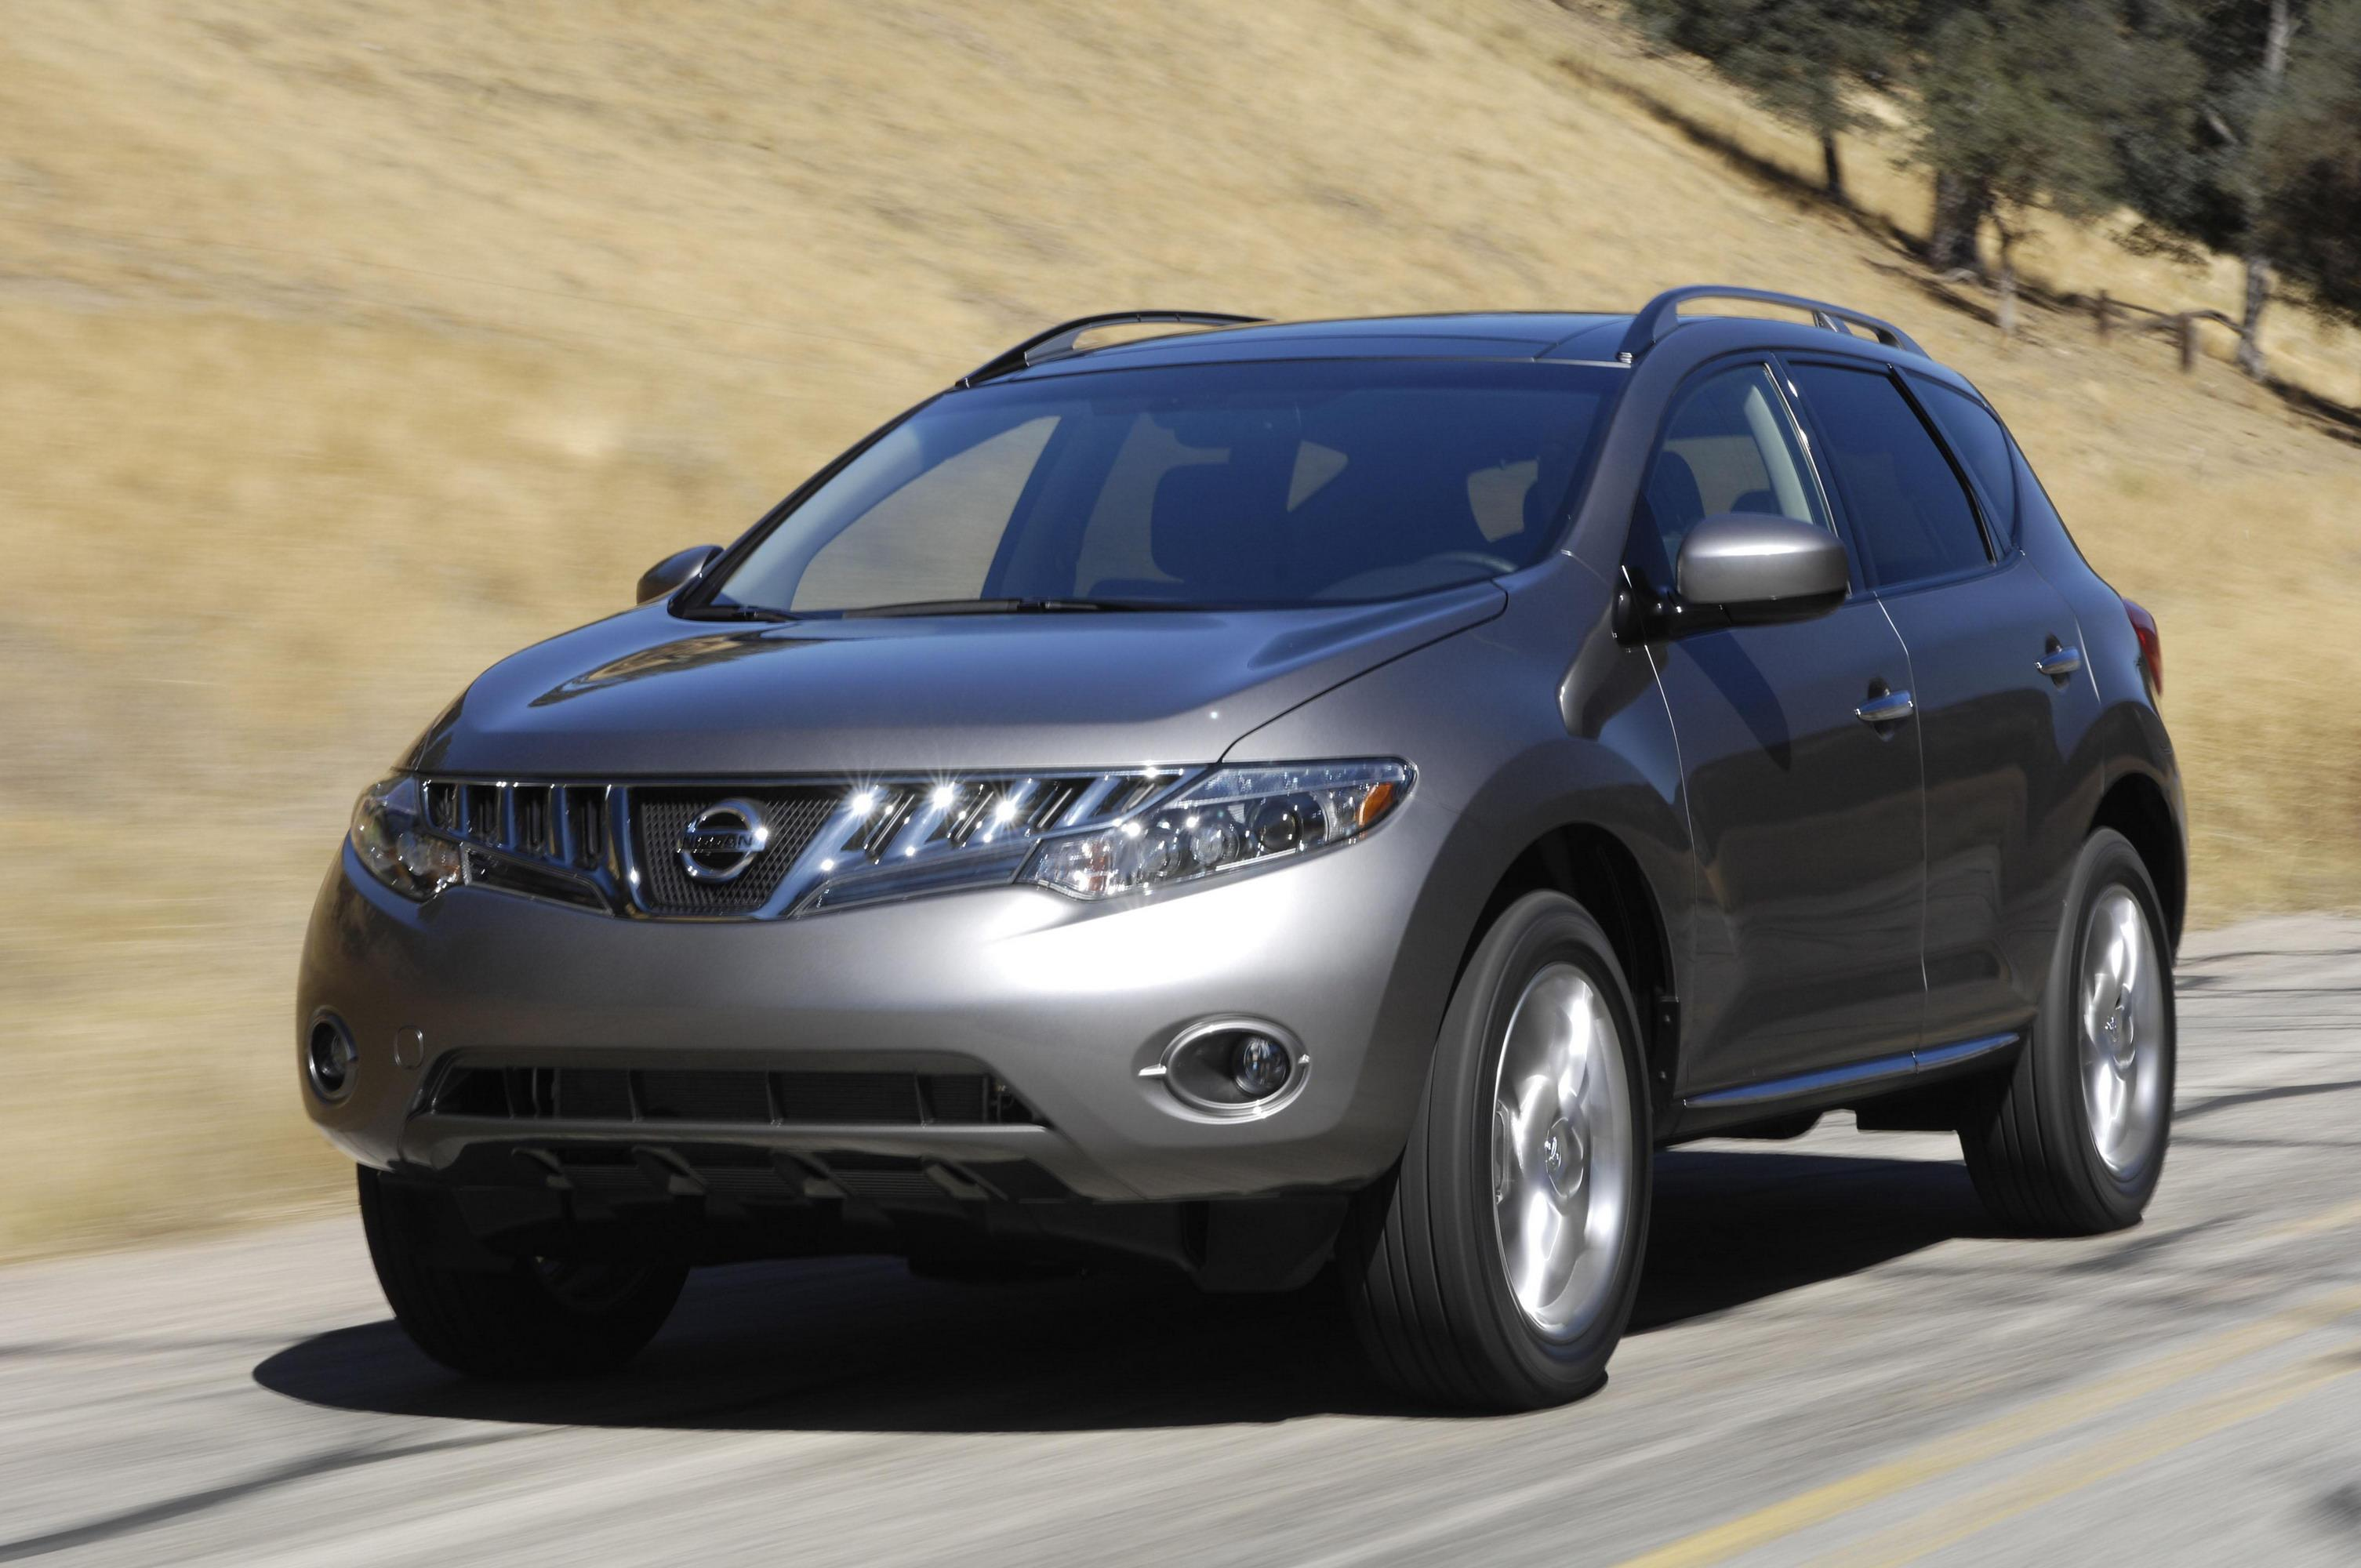 2009 nissan murano pricing announced news top speed. Black Bedroom Furniture Sets. Home Design Ideas